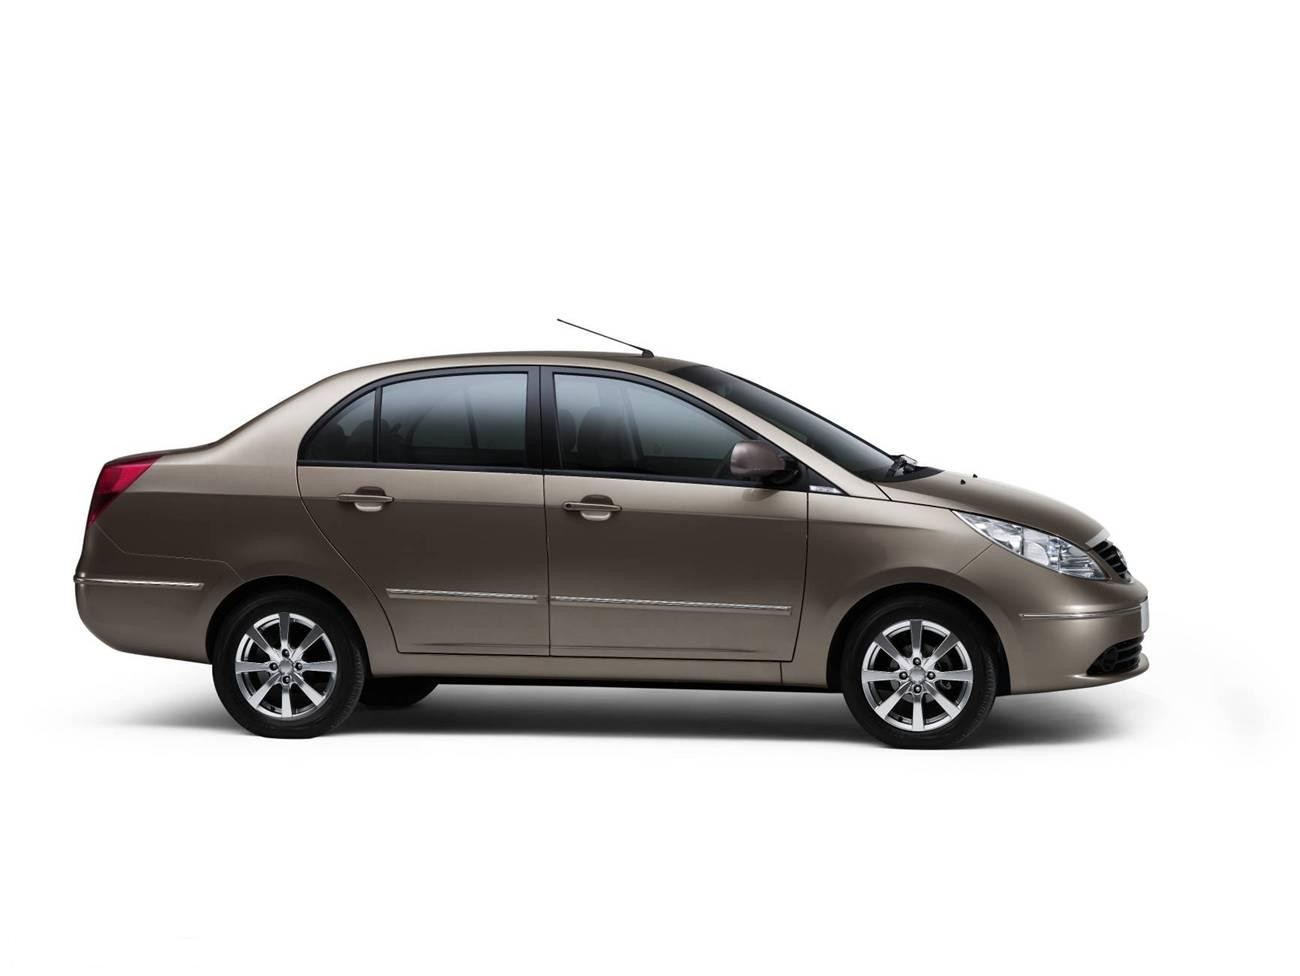 Tata Manza 2013 Wallpaper